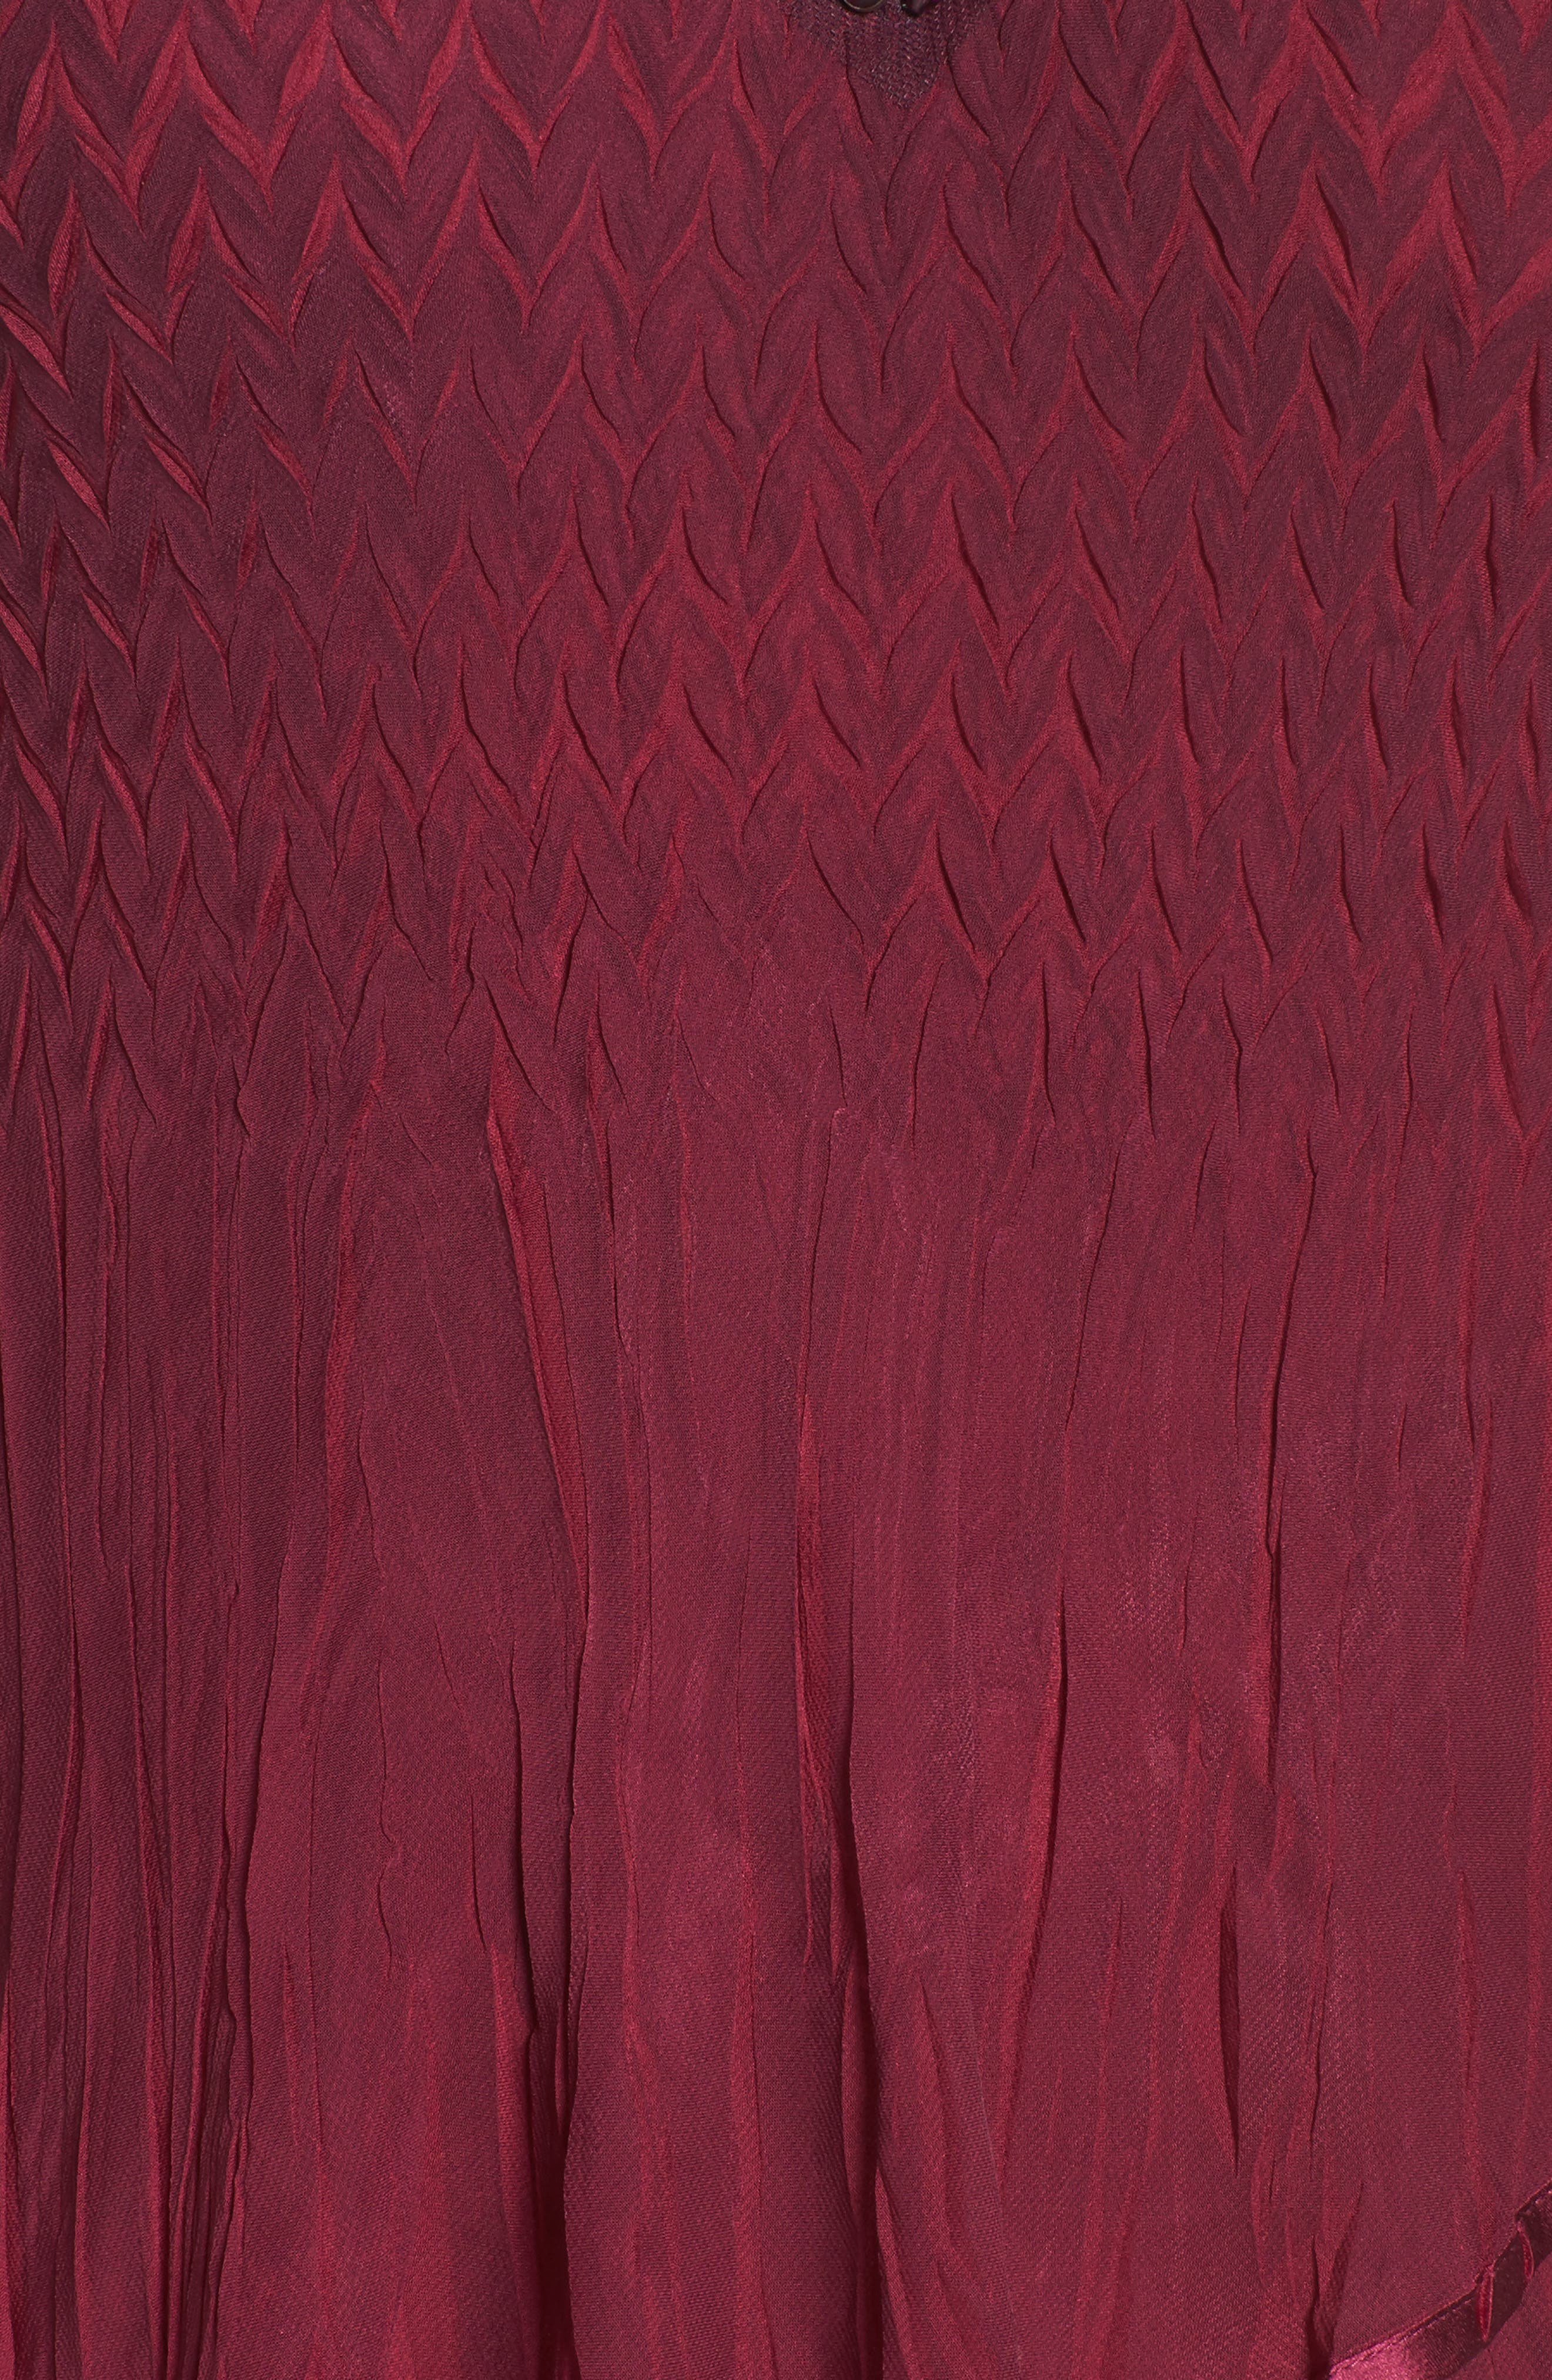 Tiered Ombré Charmeuse & Chiffon Dress,                             Alternate thumbnail 5, color,                             Red Plum Blue Ombre